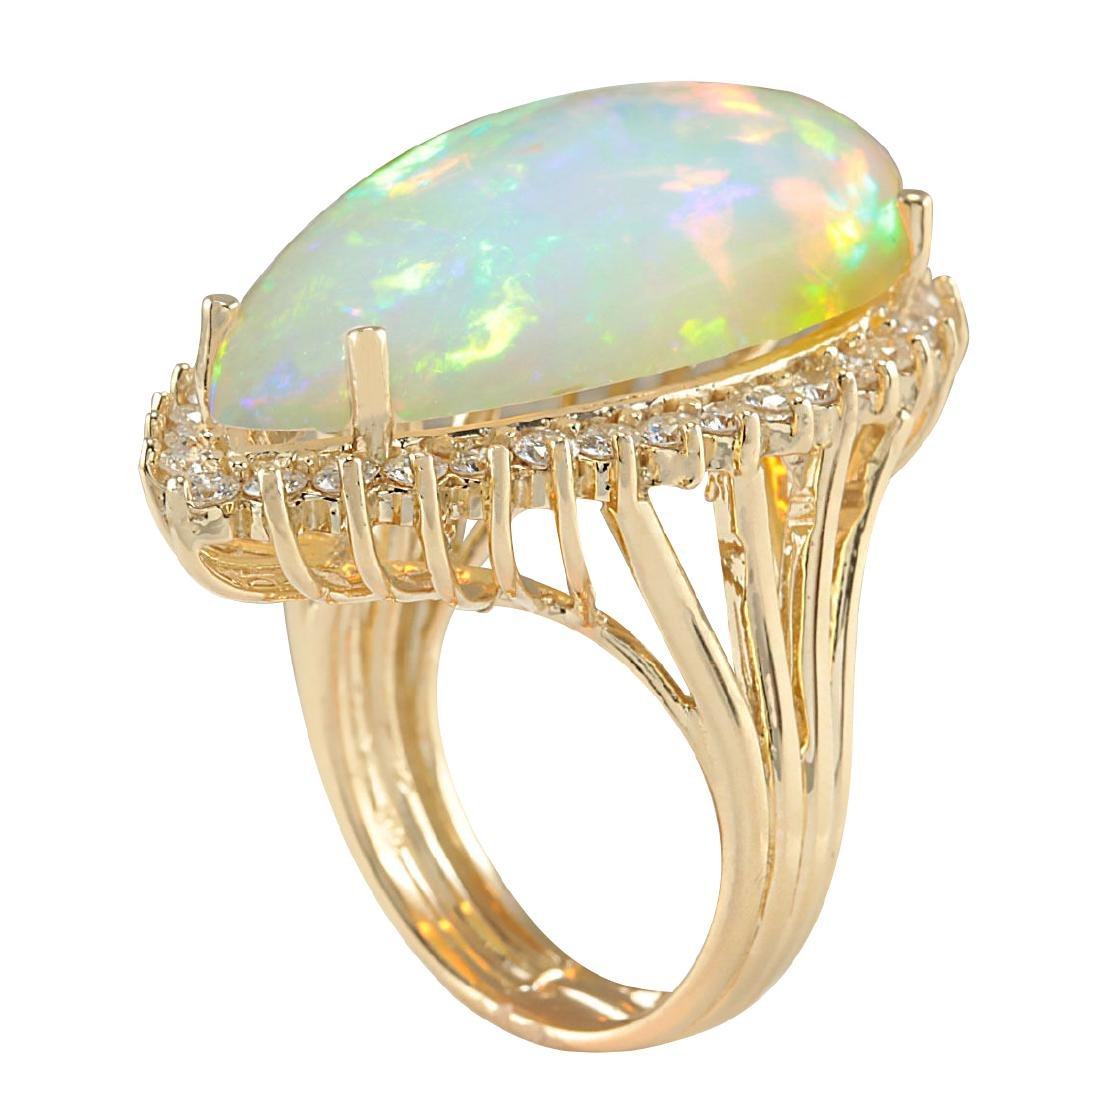 19.42CTW Natural Opal And Diamond Ring In 18K Yellow - 3